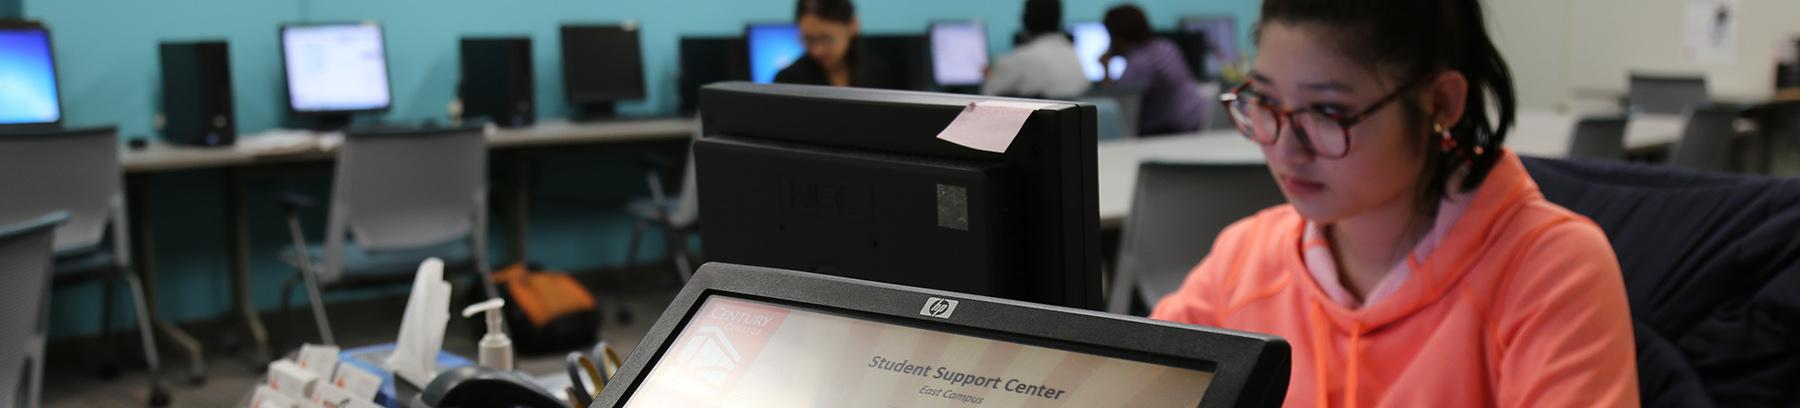 Image of student working on a computer in the student support center.